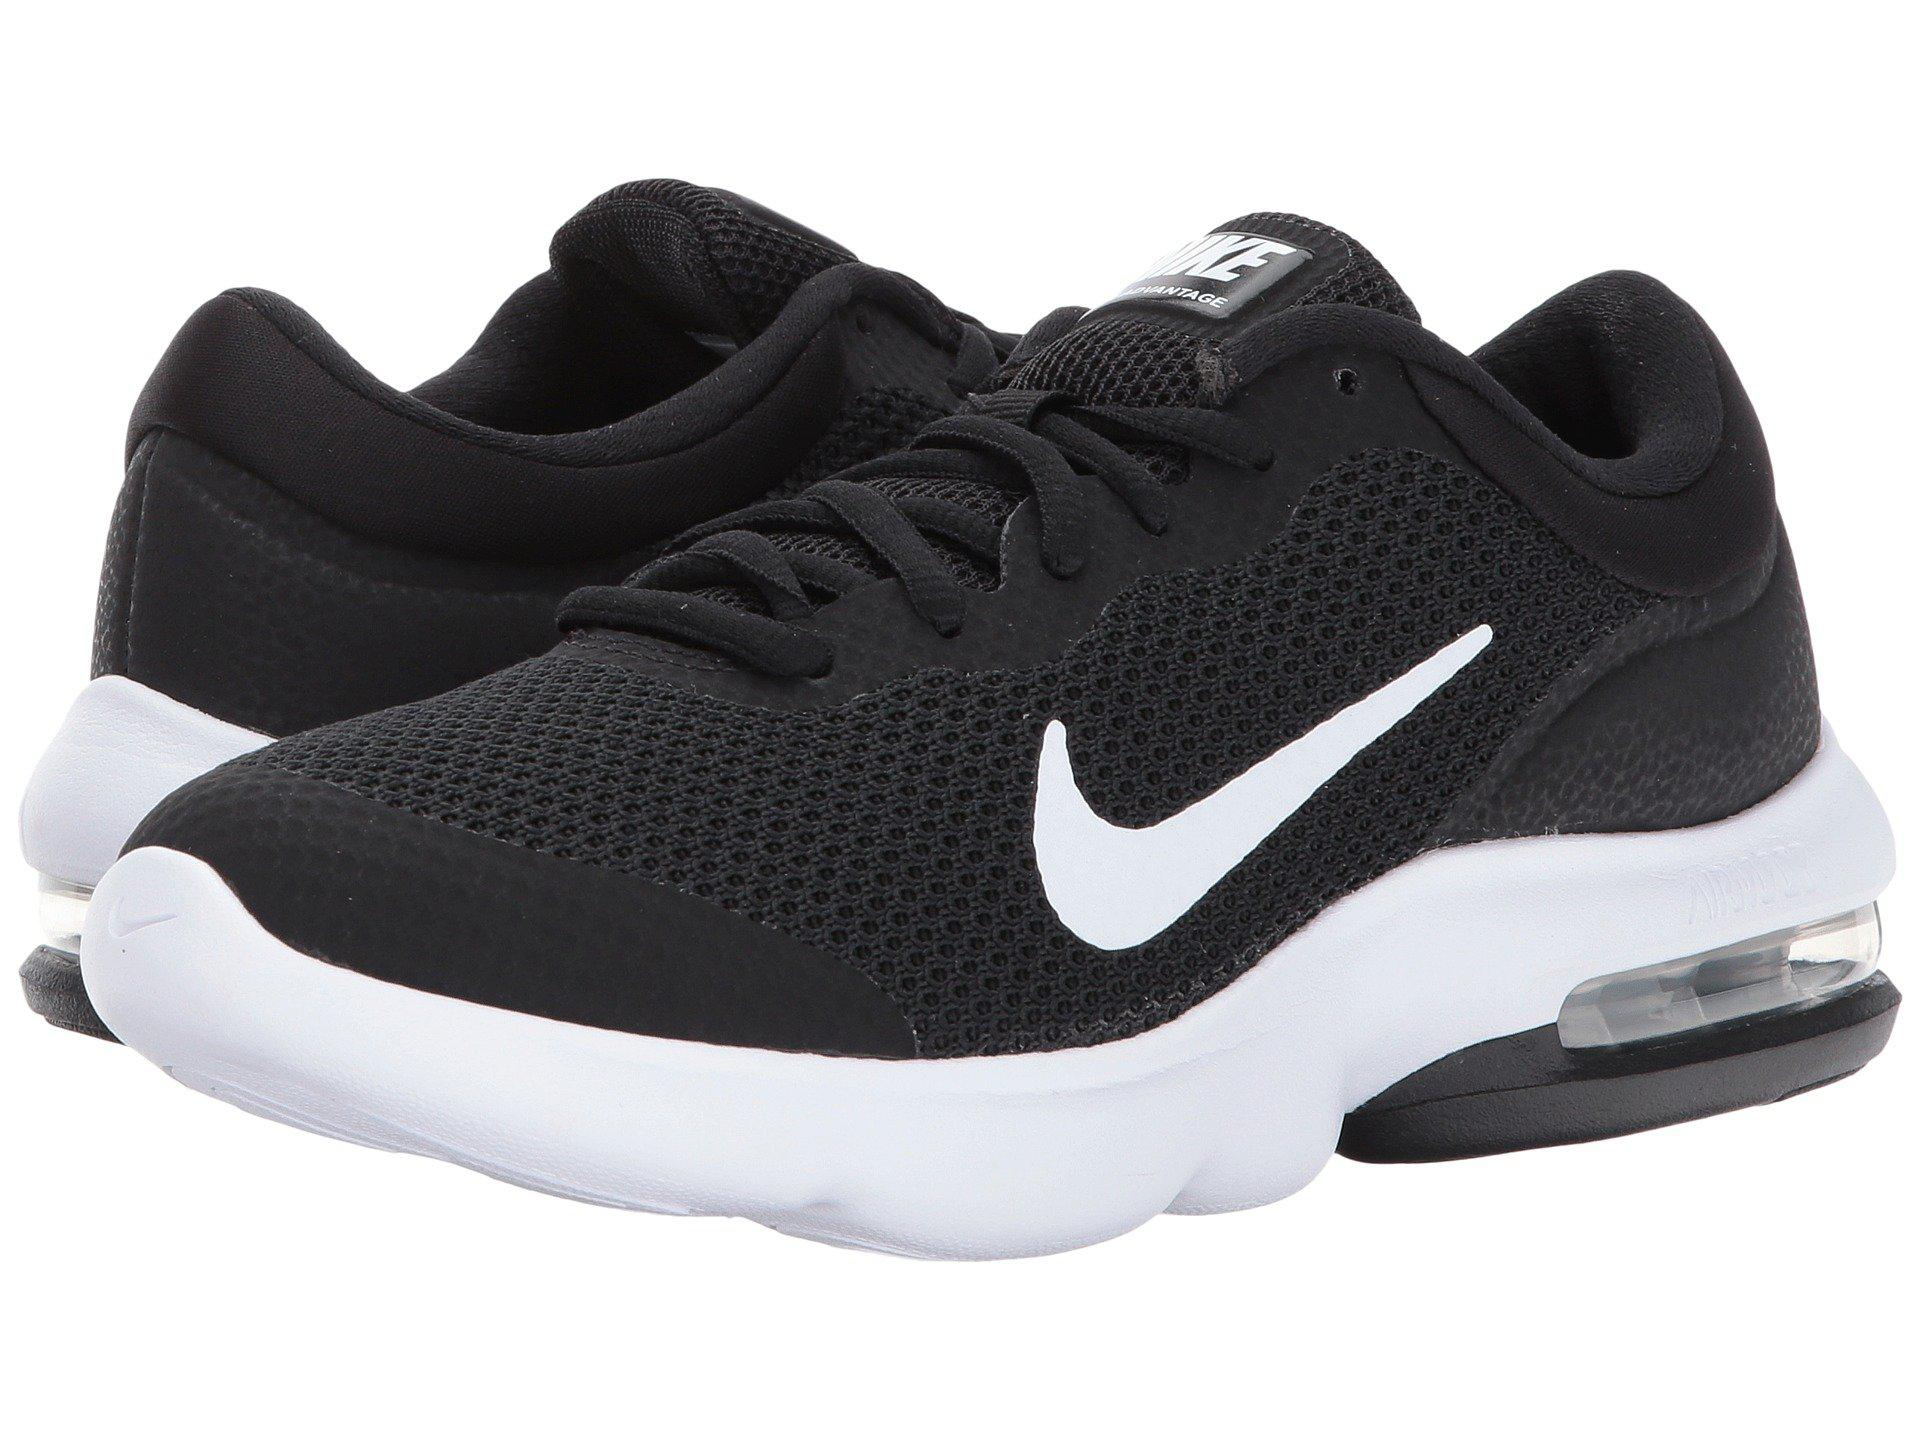 fb631596b170 ... coupon for uk lyst nike air max advantage black anthracite womens  running cce98 97dc1 f7666 e4a9b